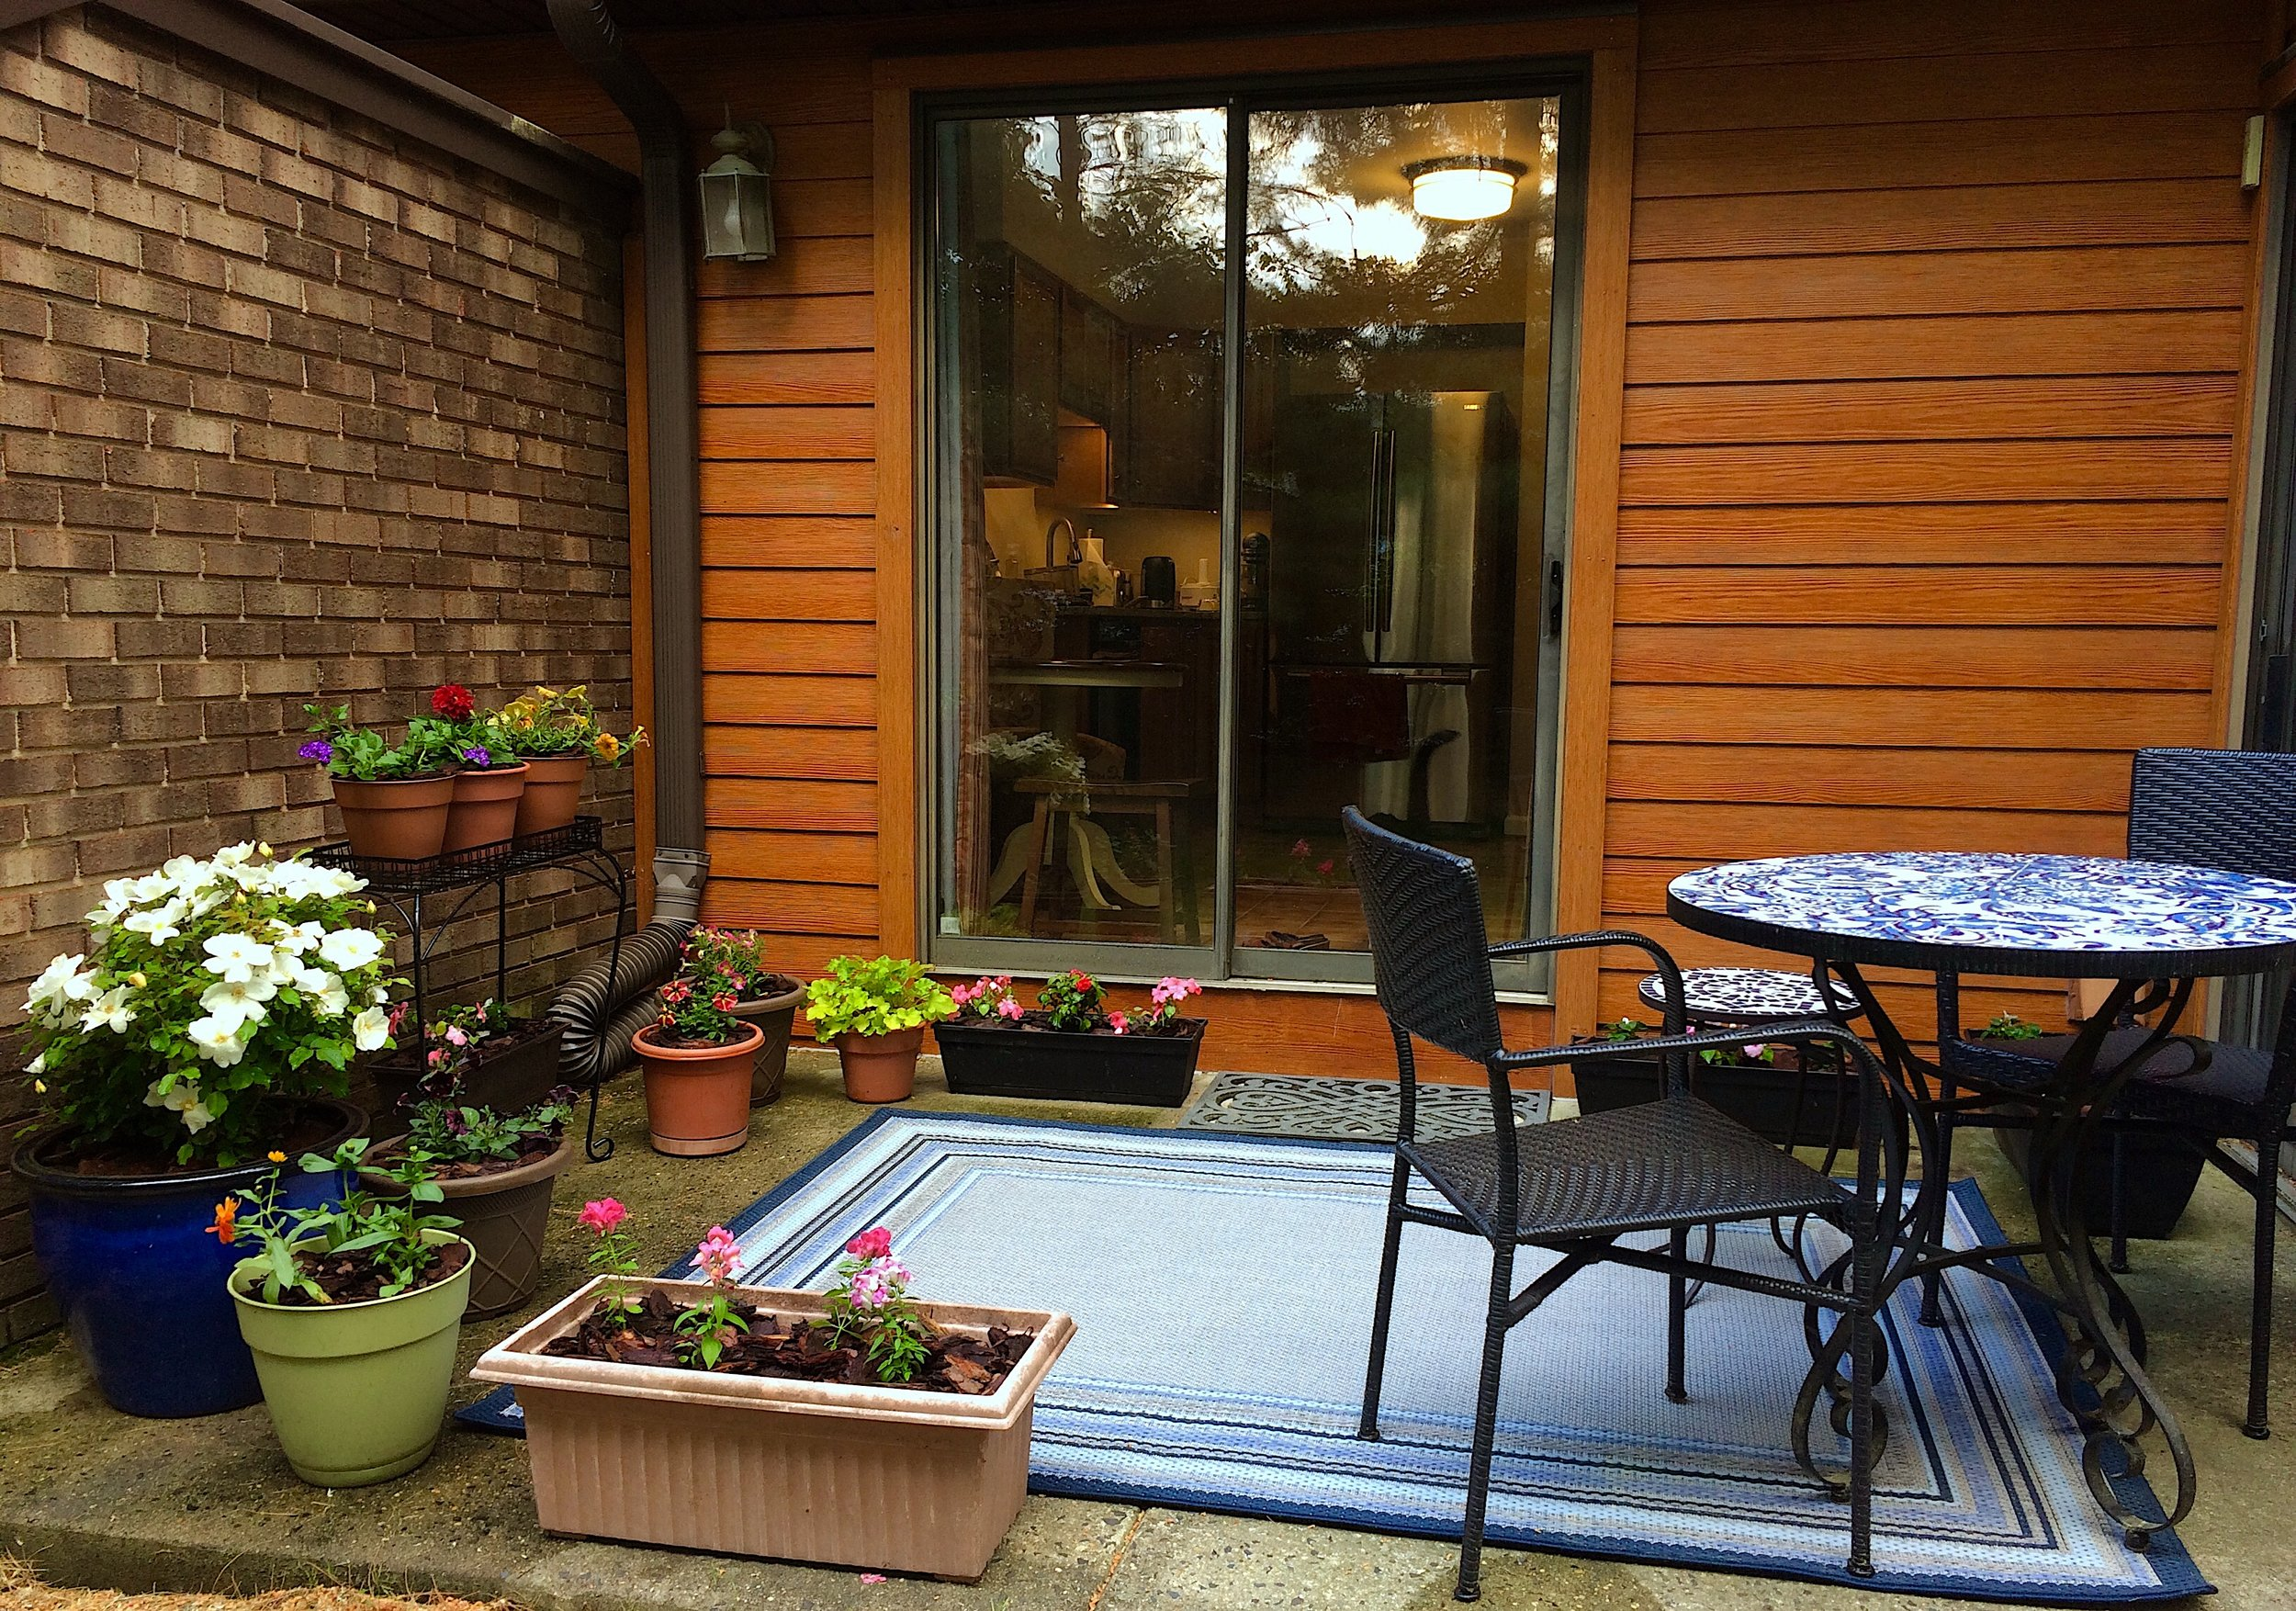 Mosaic Bistro Table from Pier1  (unfortunately, the one I have is no longer available),  Del Rey Stacking Chairs  from Pier1 in Black,  Allen + Roth Outdoor Blue Rug  from Lowes,  Mohawk Home Core Doormat  in Black from Lowes